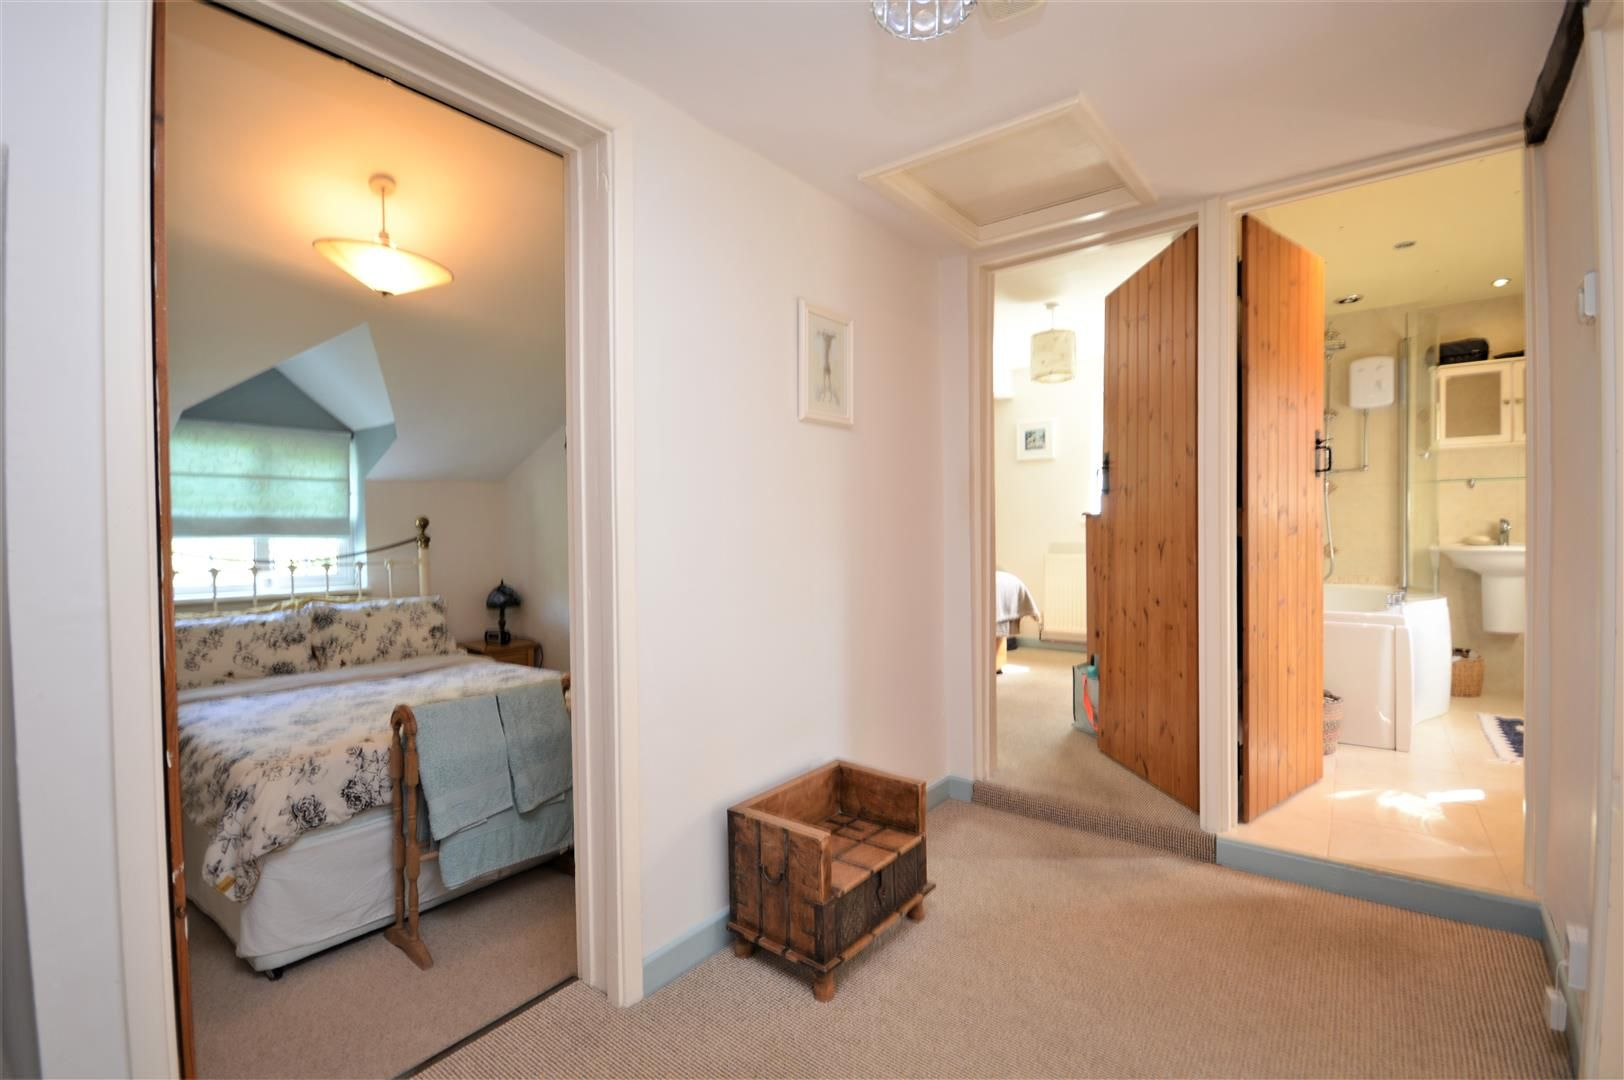 3 bed semi-detached for sale in Stretton Sugwas 18